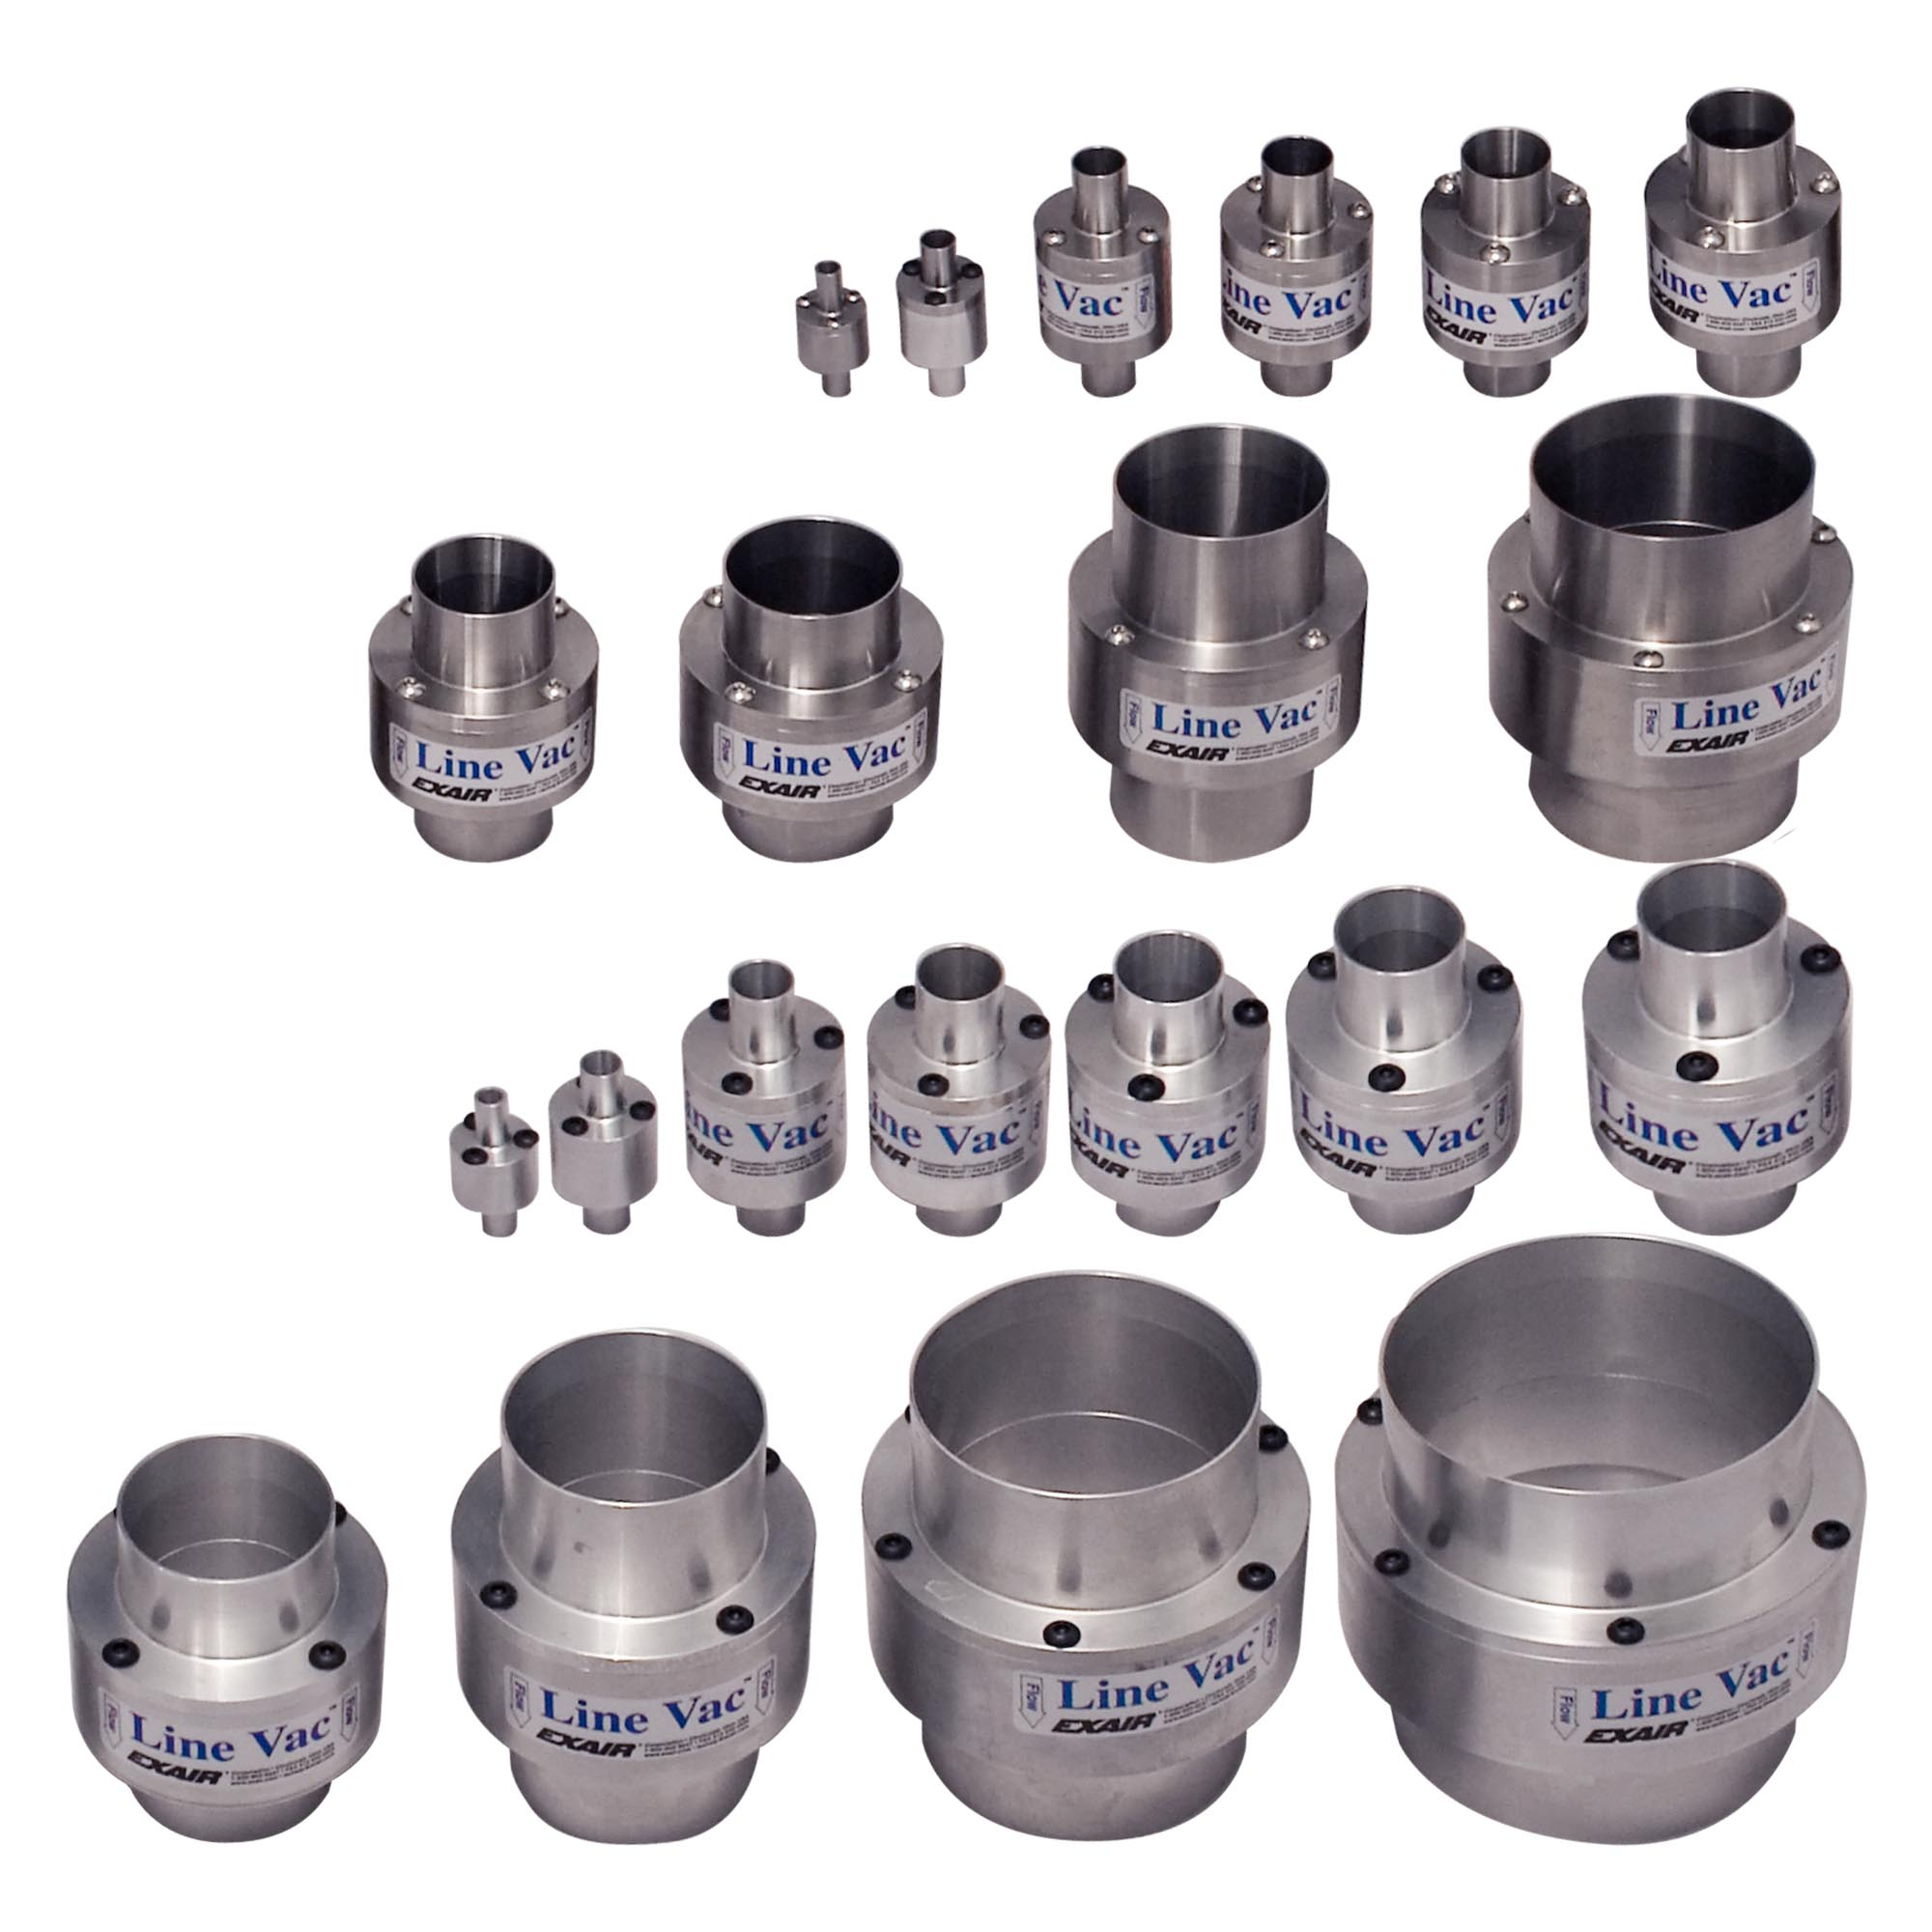 Line Vacs are available in many sizes in both aluminum and stainless steel.